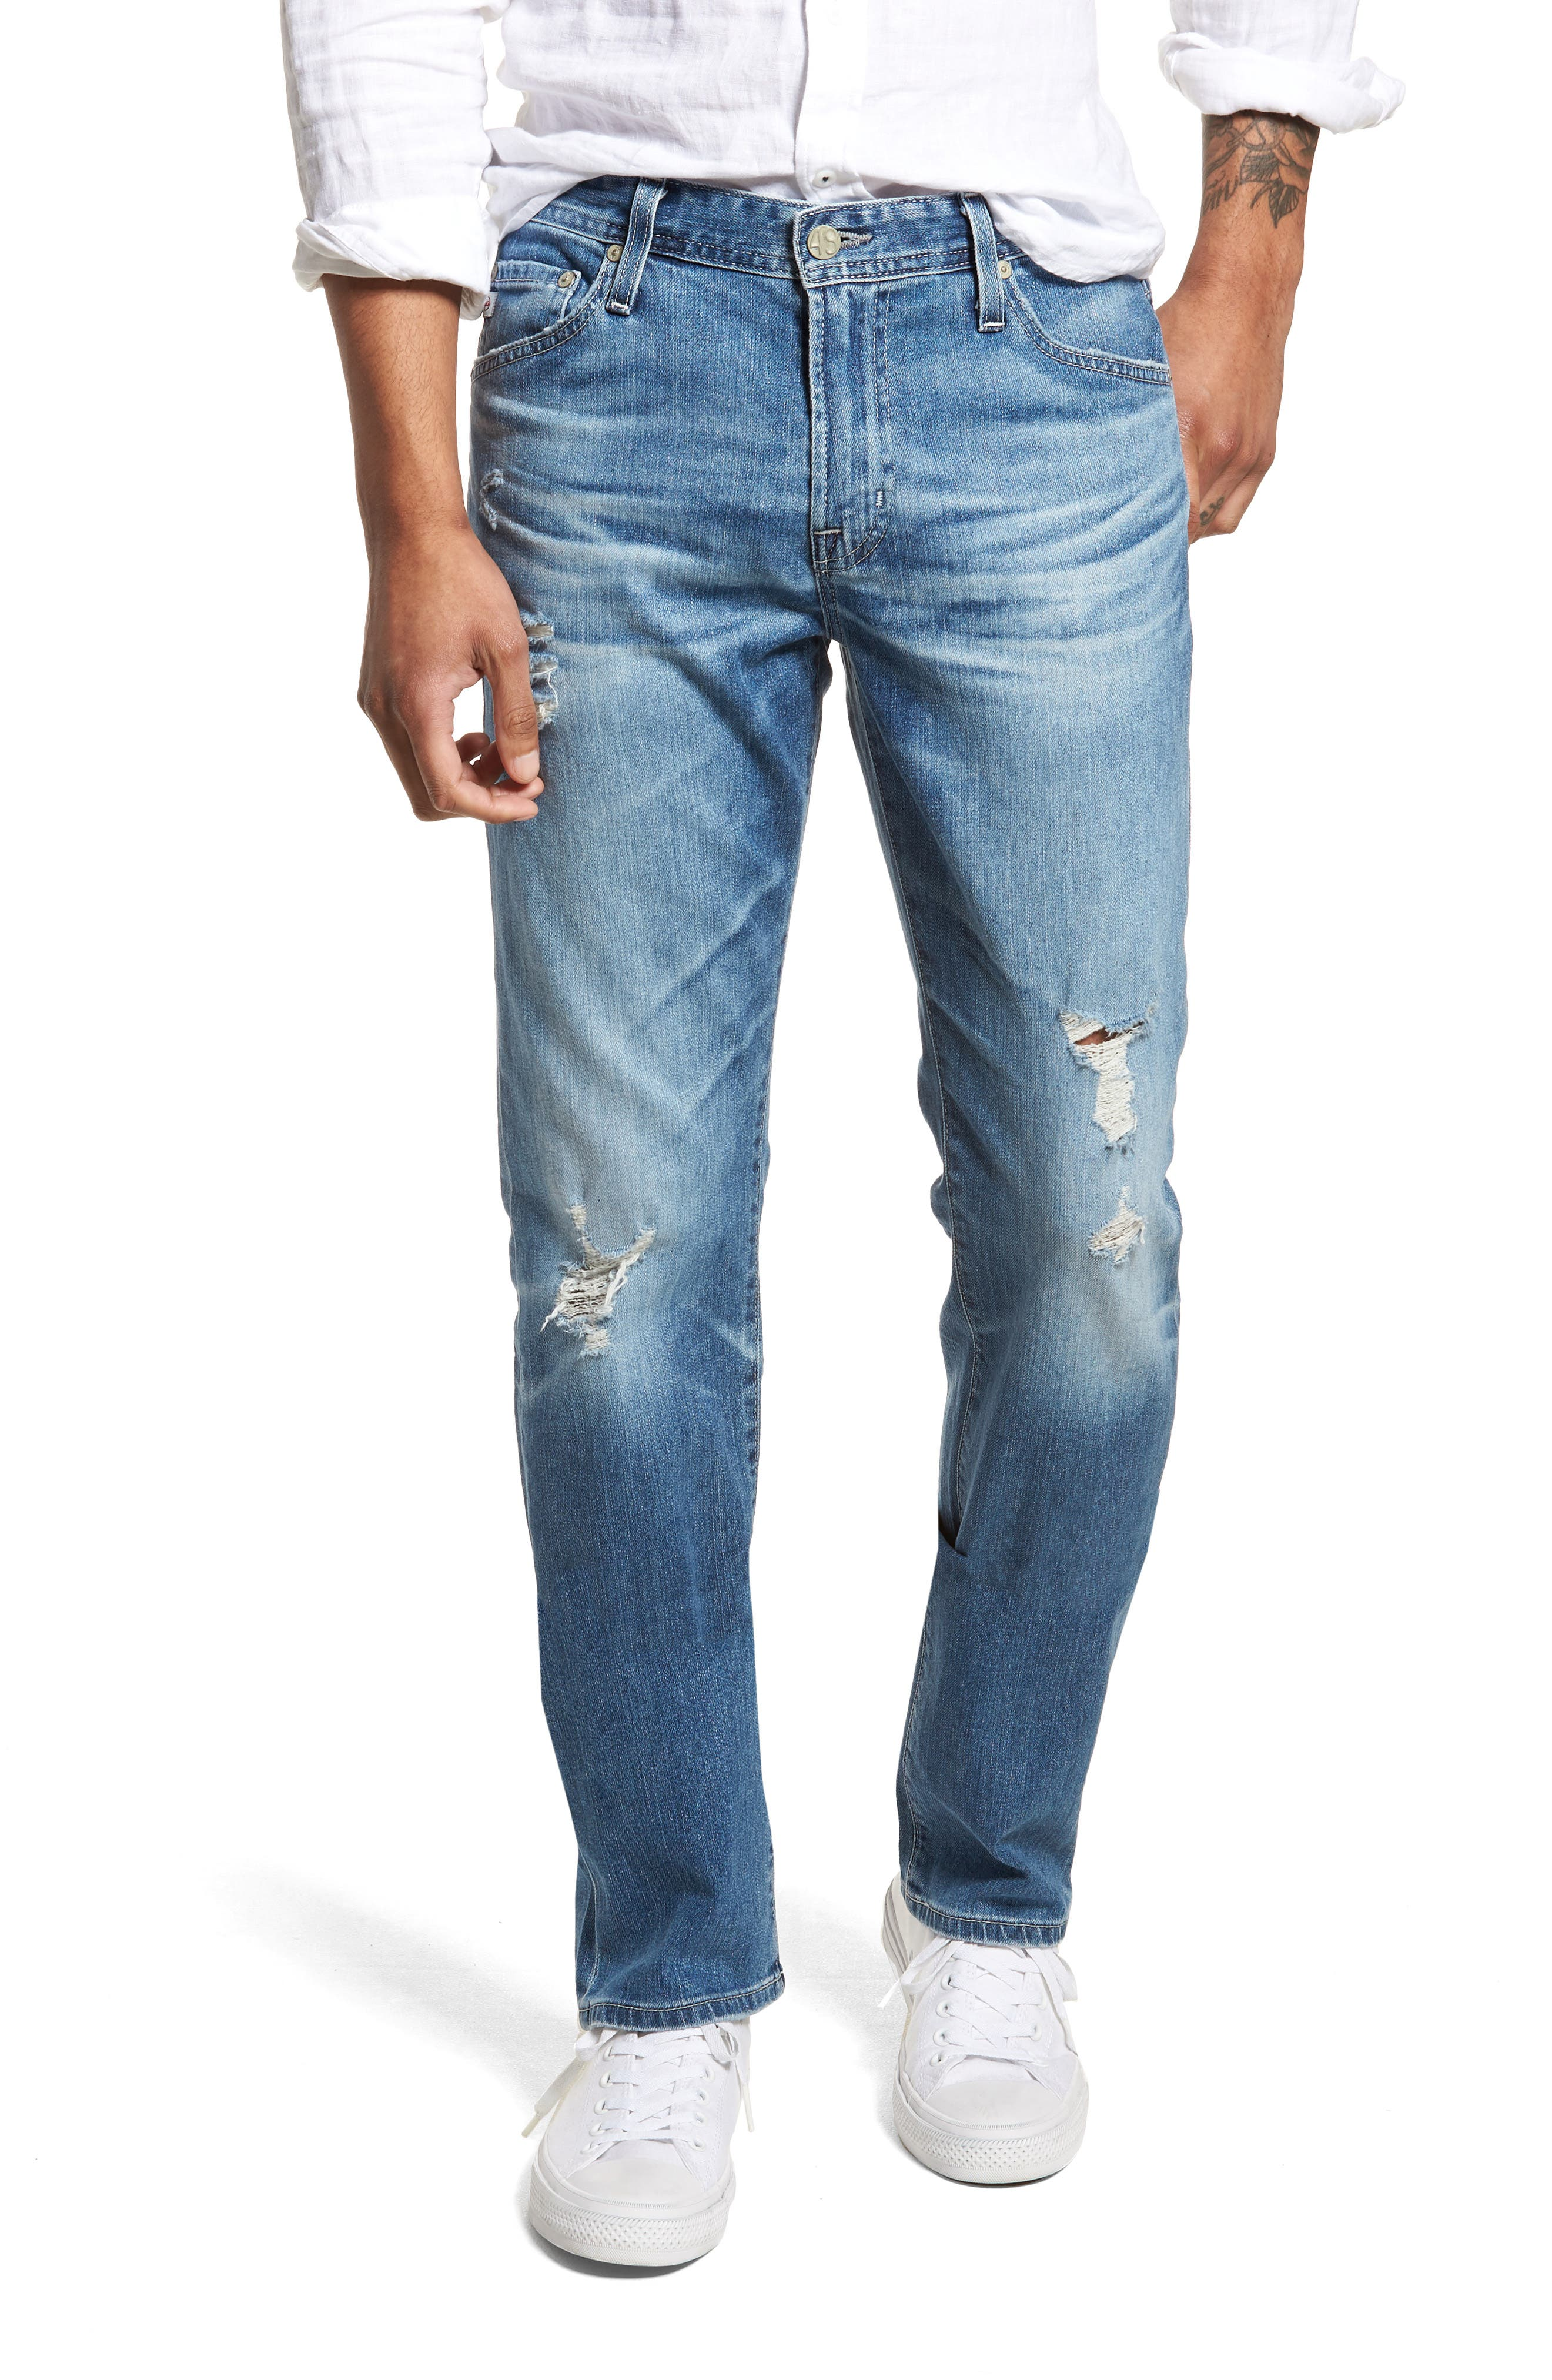 Everett Slim Straight Leg Jeans,                         Main,                         color, 15 Years Swept Up